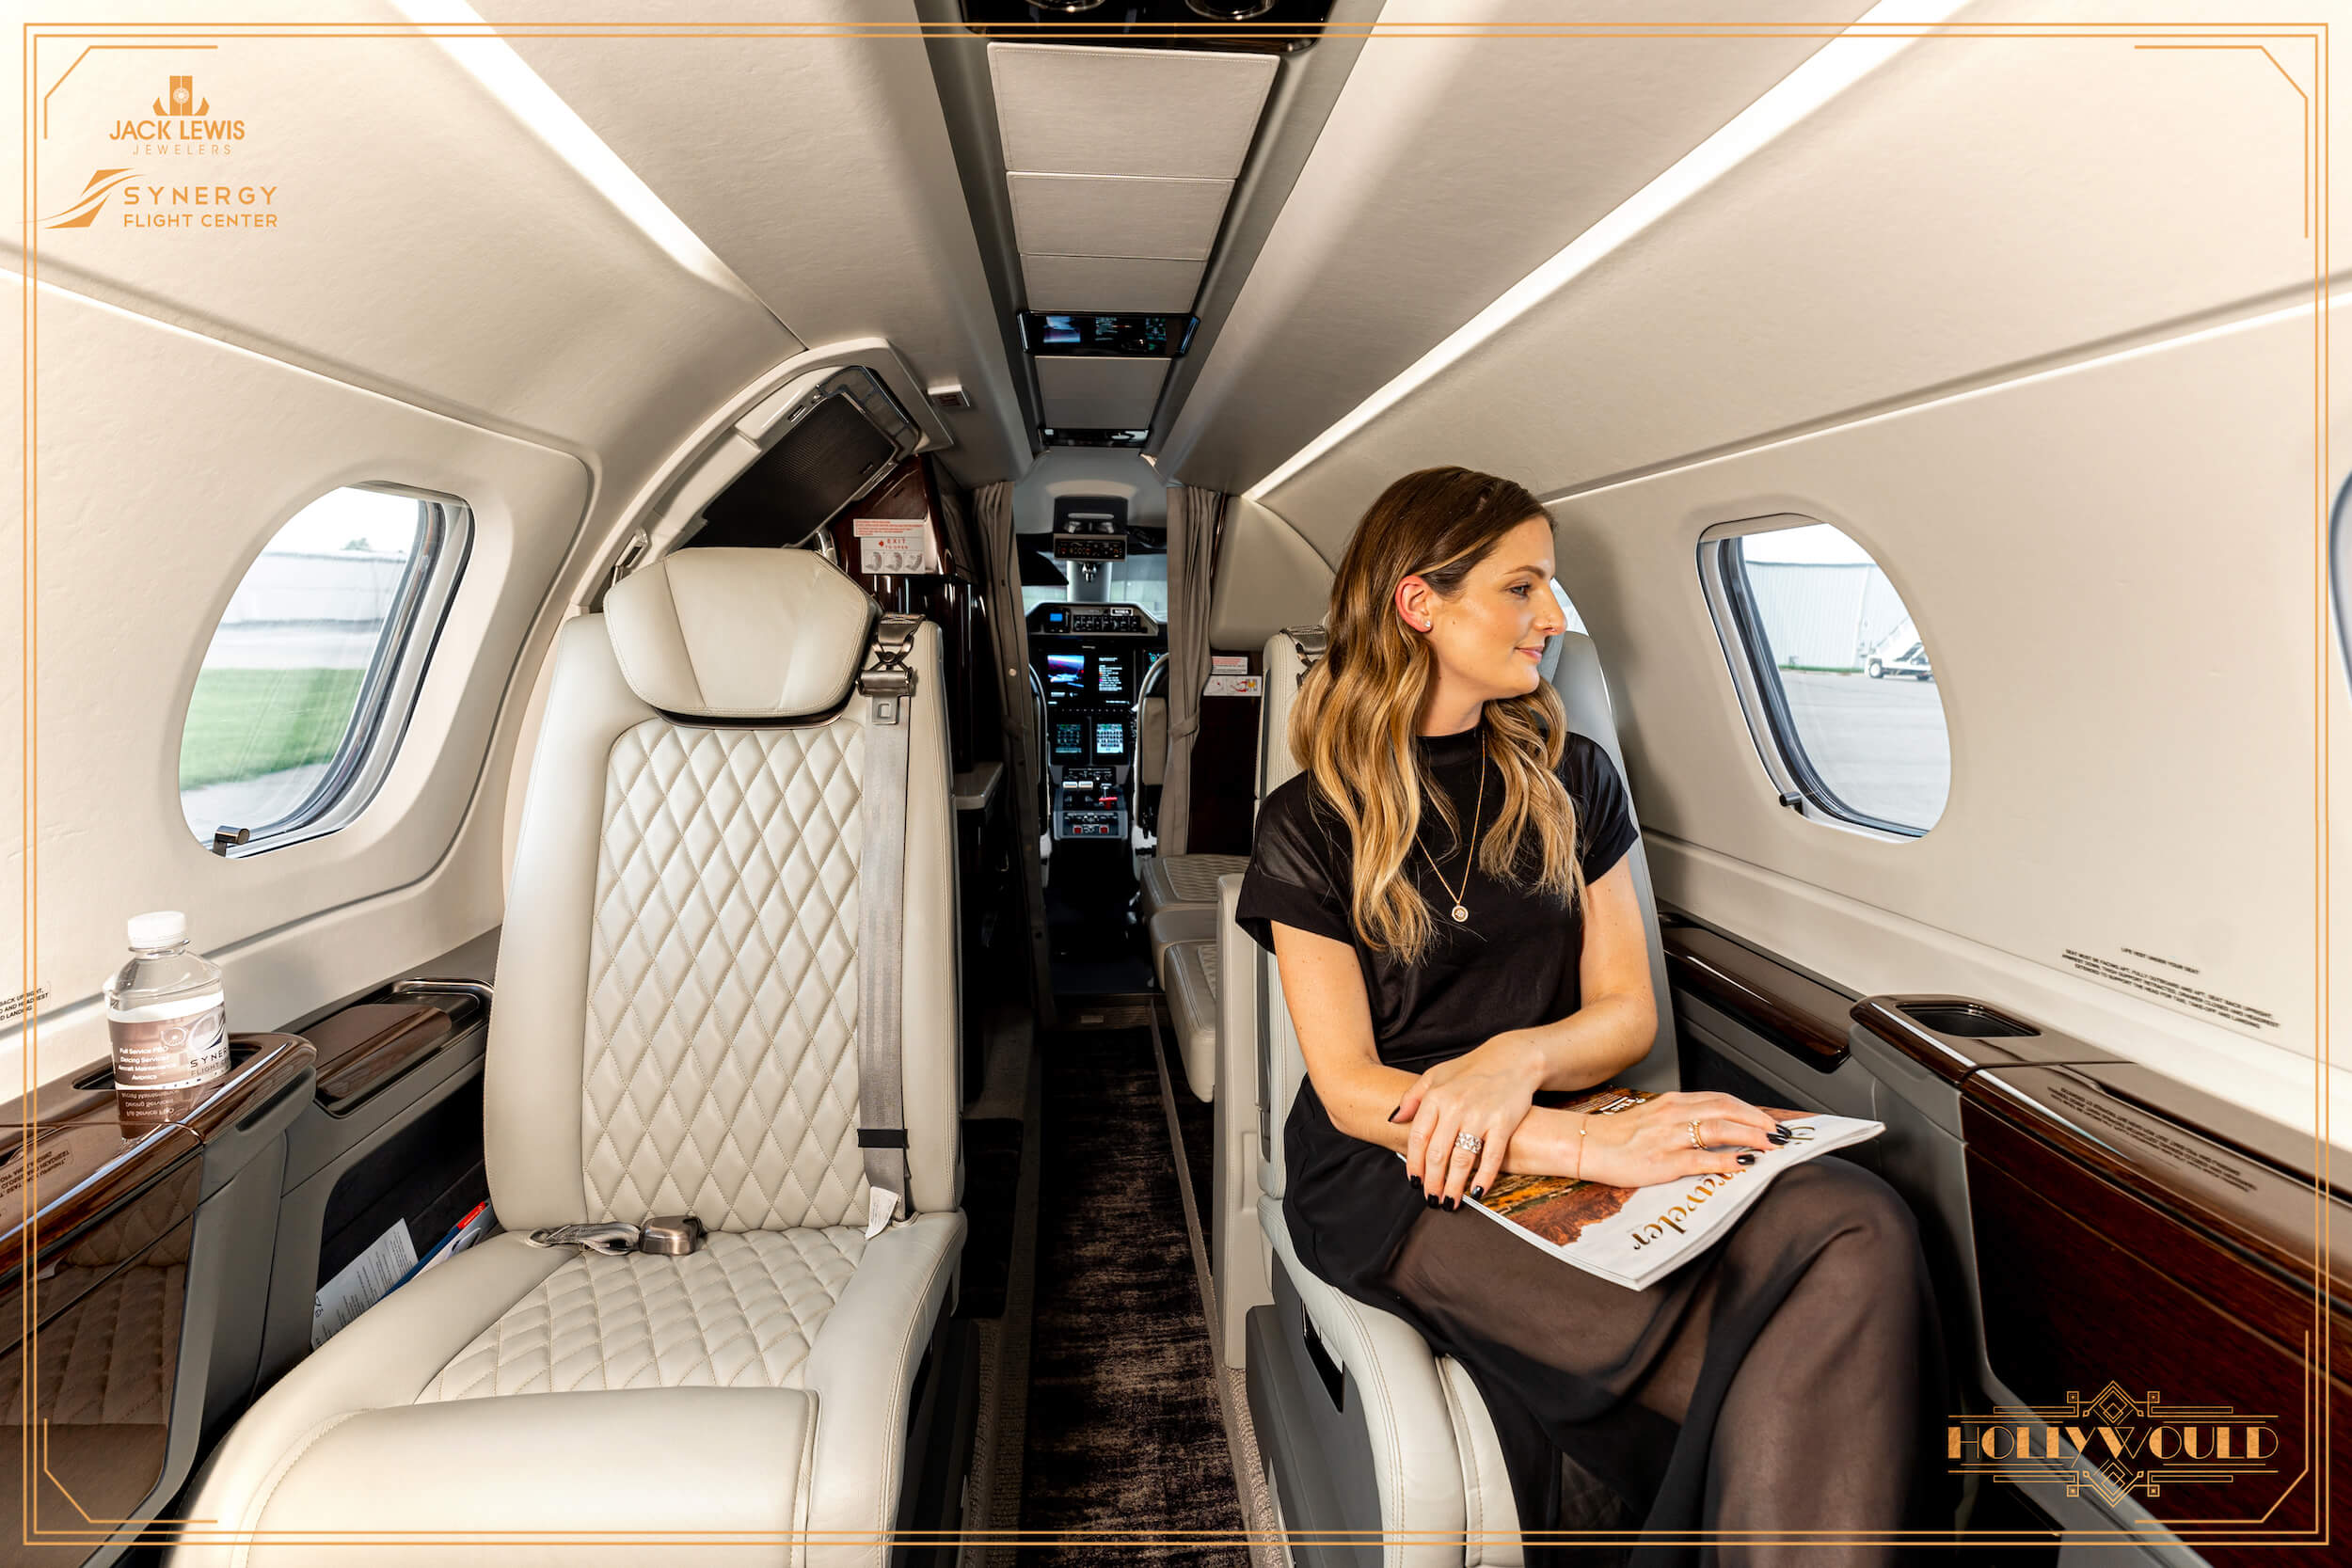 Young woman with long brown hair seated in a private jet at the Synergy Flight Center in Bloomington Illinois. She is wearing a black dress and looking out the window at the runway. Jewelry by Debeers Forevermark is clearly in view.